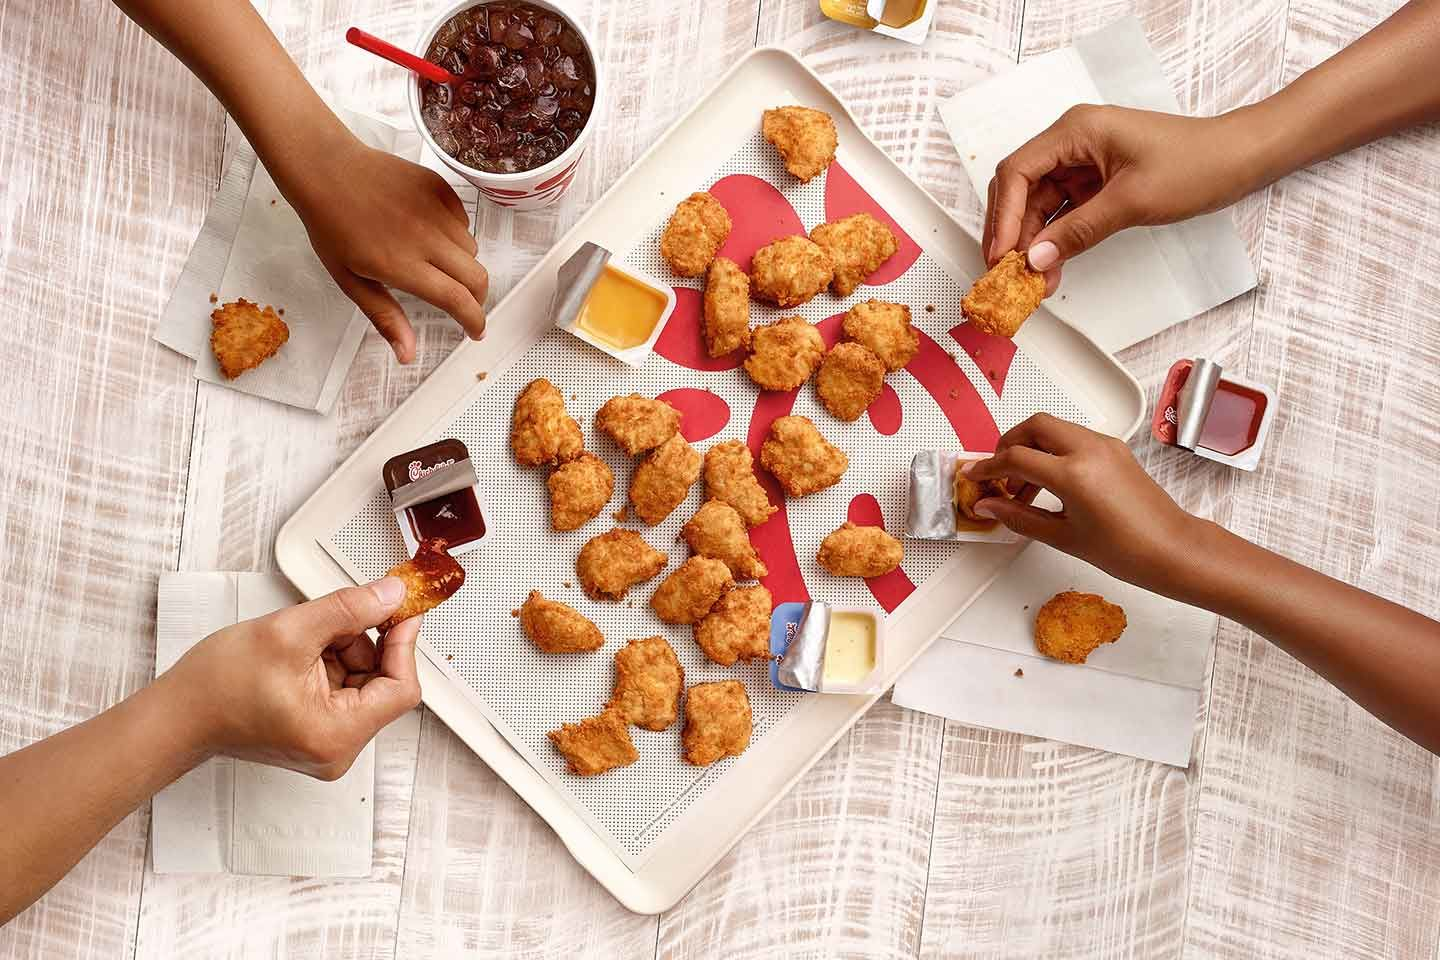 Chick-fil-A Just Dropped Five New Menu Offerings